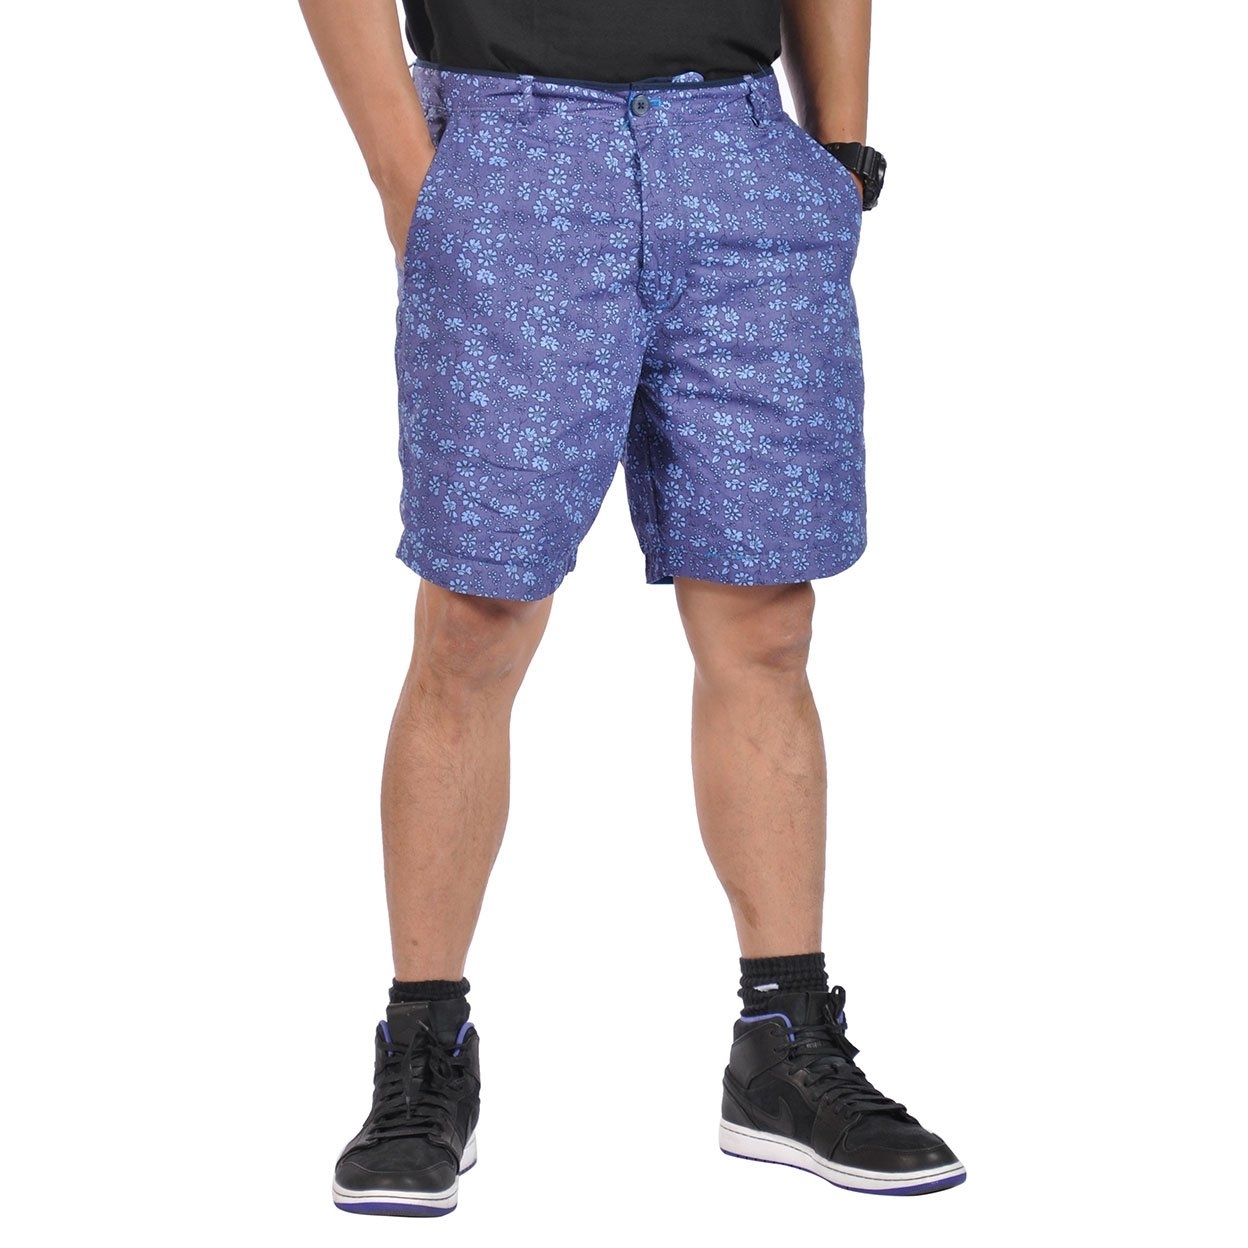 Mens All Cotton Flat Front Reversible Walking Shorts Royal Blue and Blossom Purple